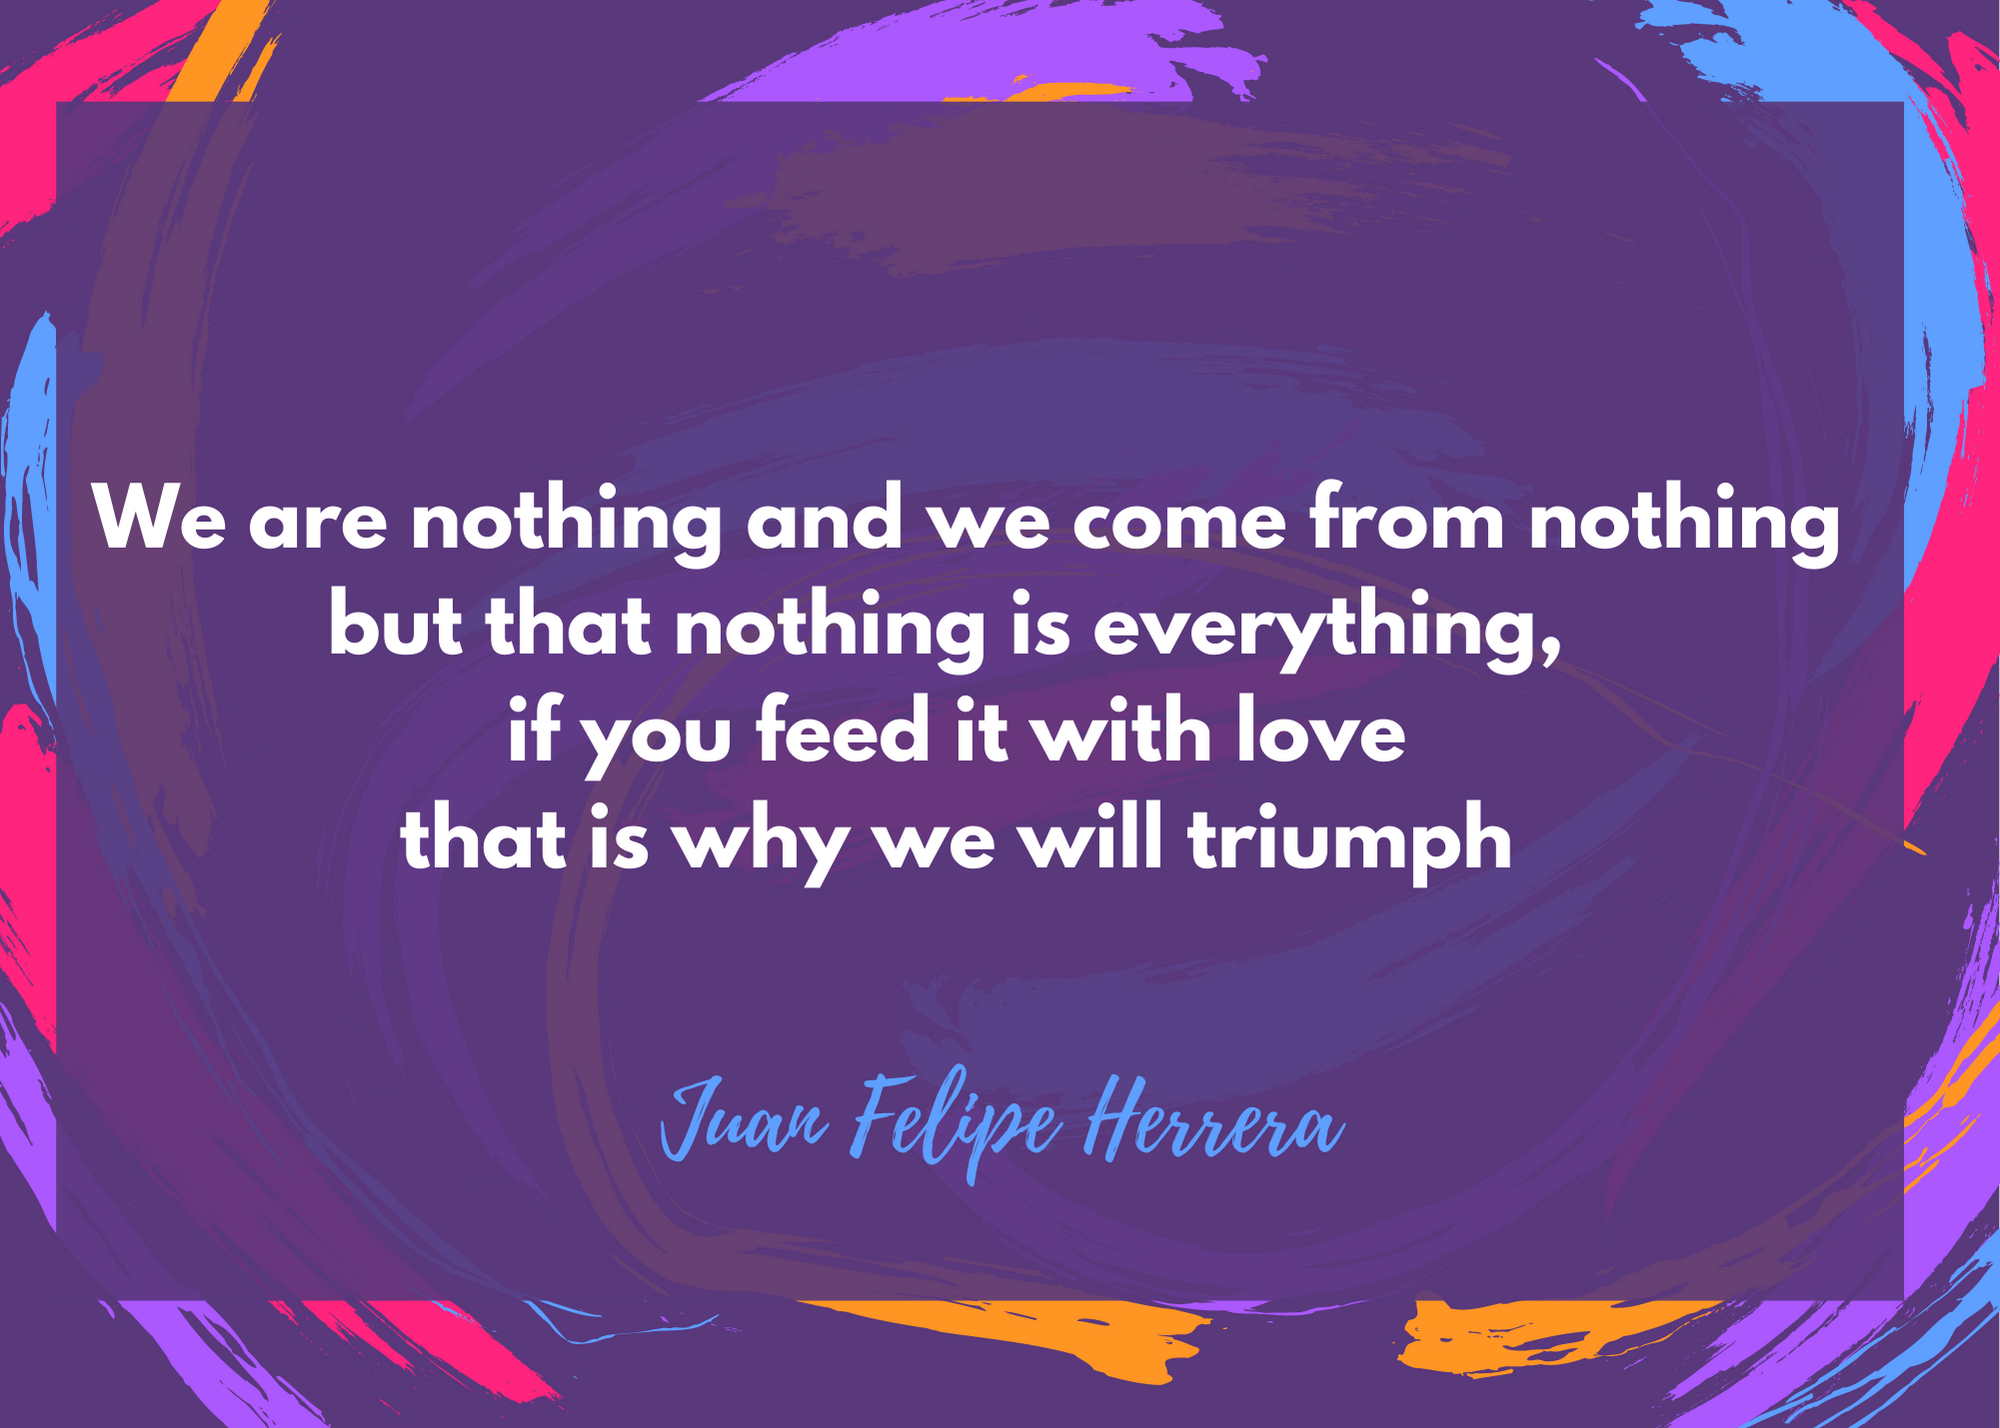 We are nothing and we come from nothing but that nothing is everything, if you feed it with love that is why we will triumph - Juan Felipe Herrera